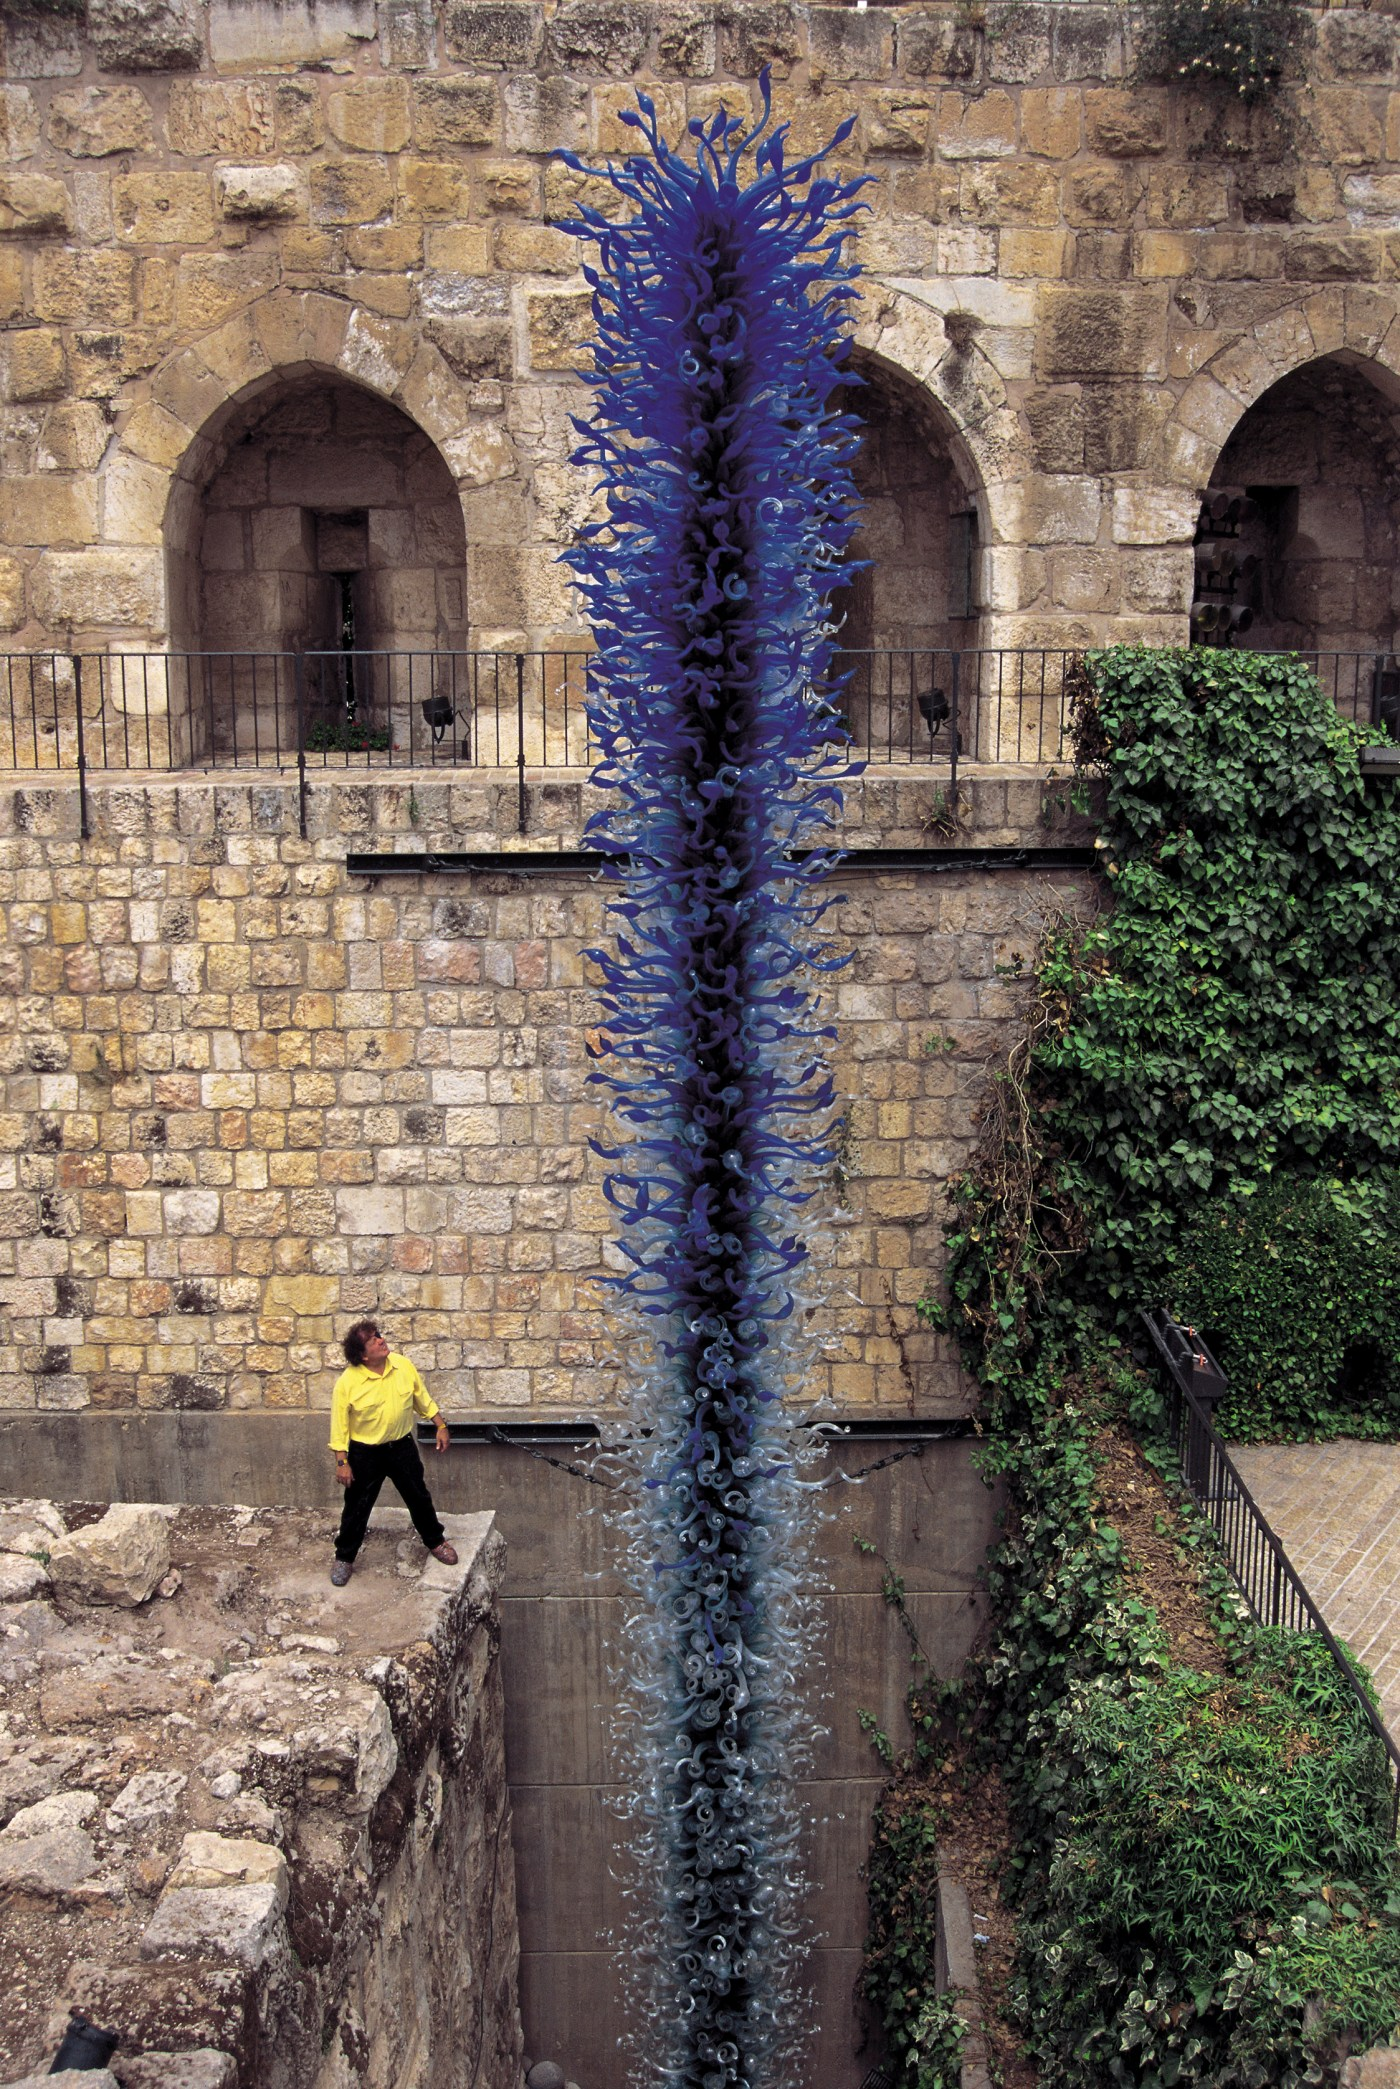 Dale Chihuly with Blue Tower, Jerusalem, 奇胡利與作品《藍塔》,耶路撒冷,1999 © Chihuly Studio